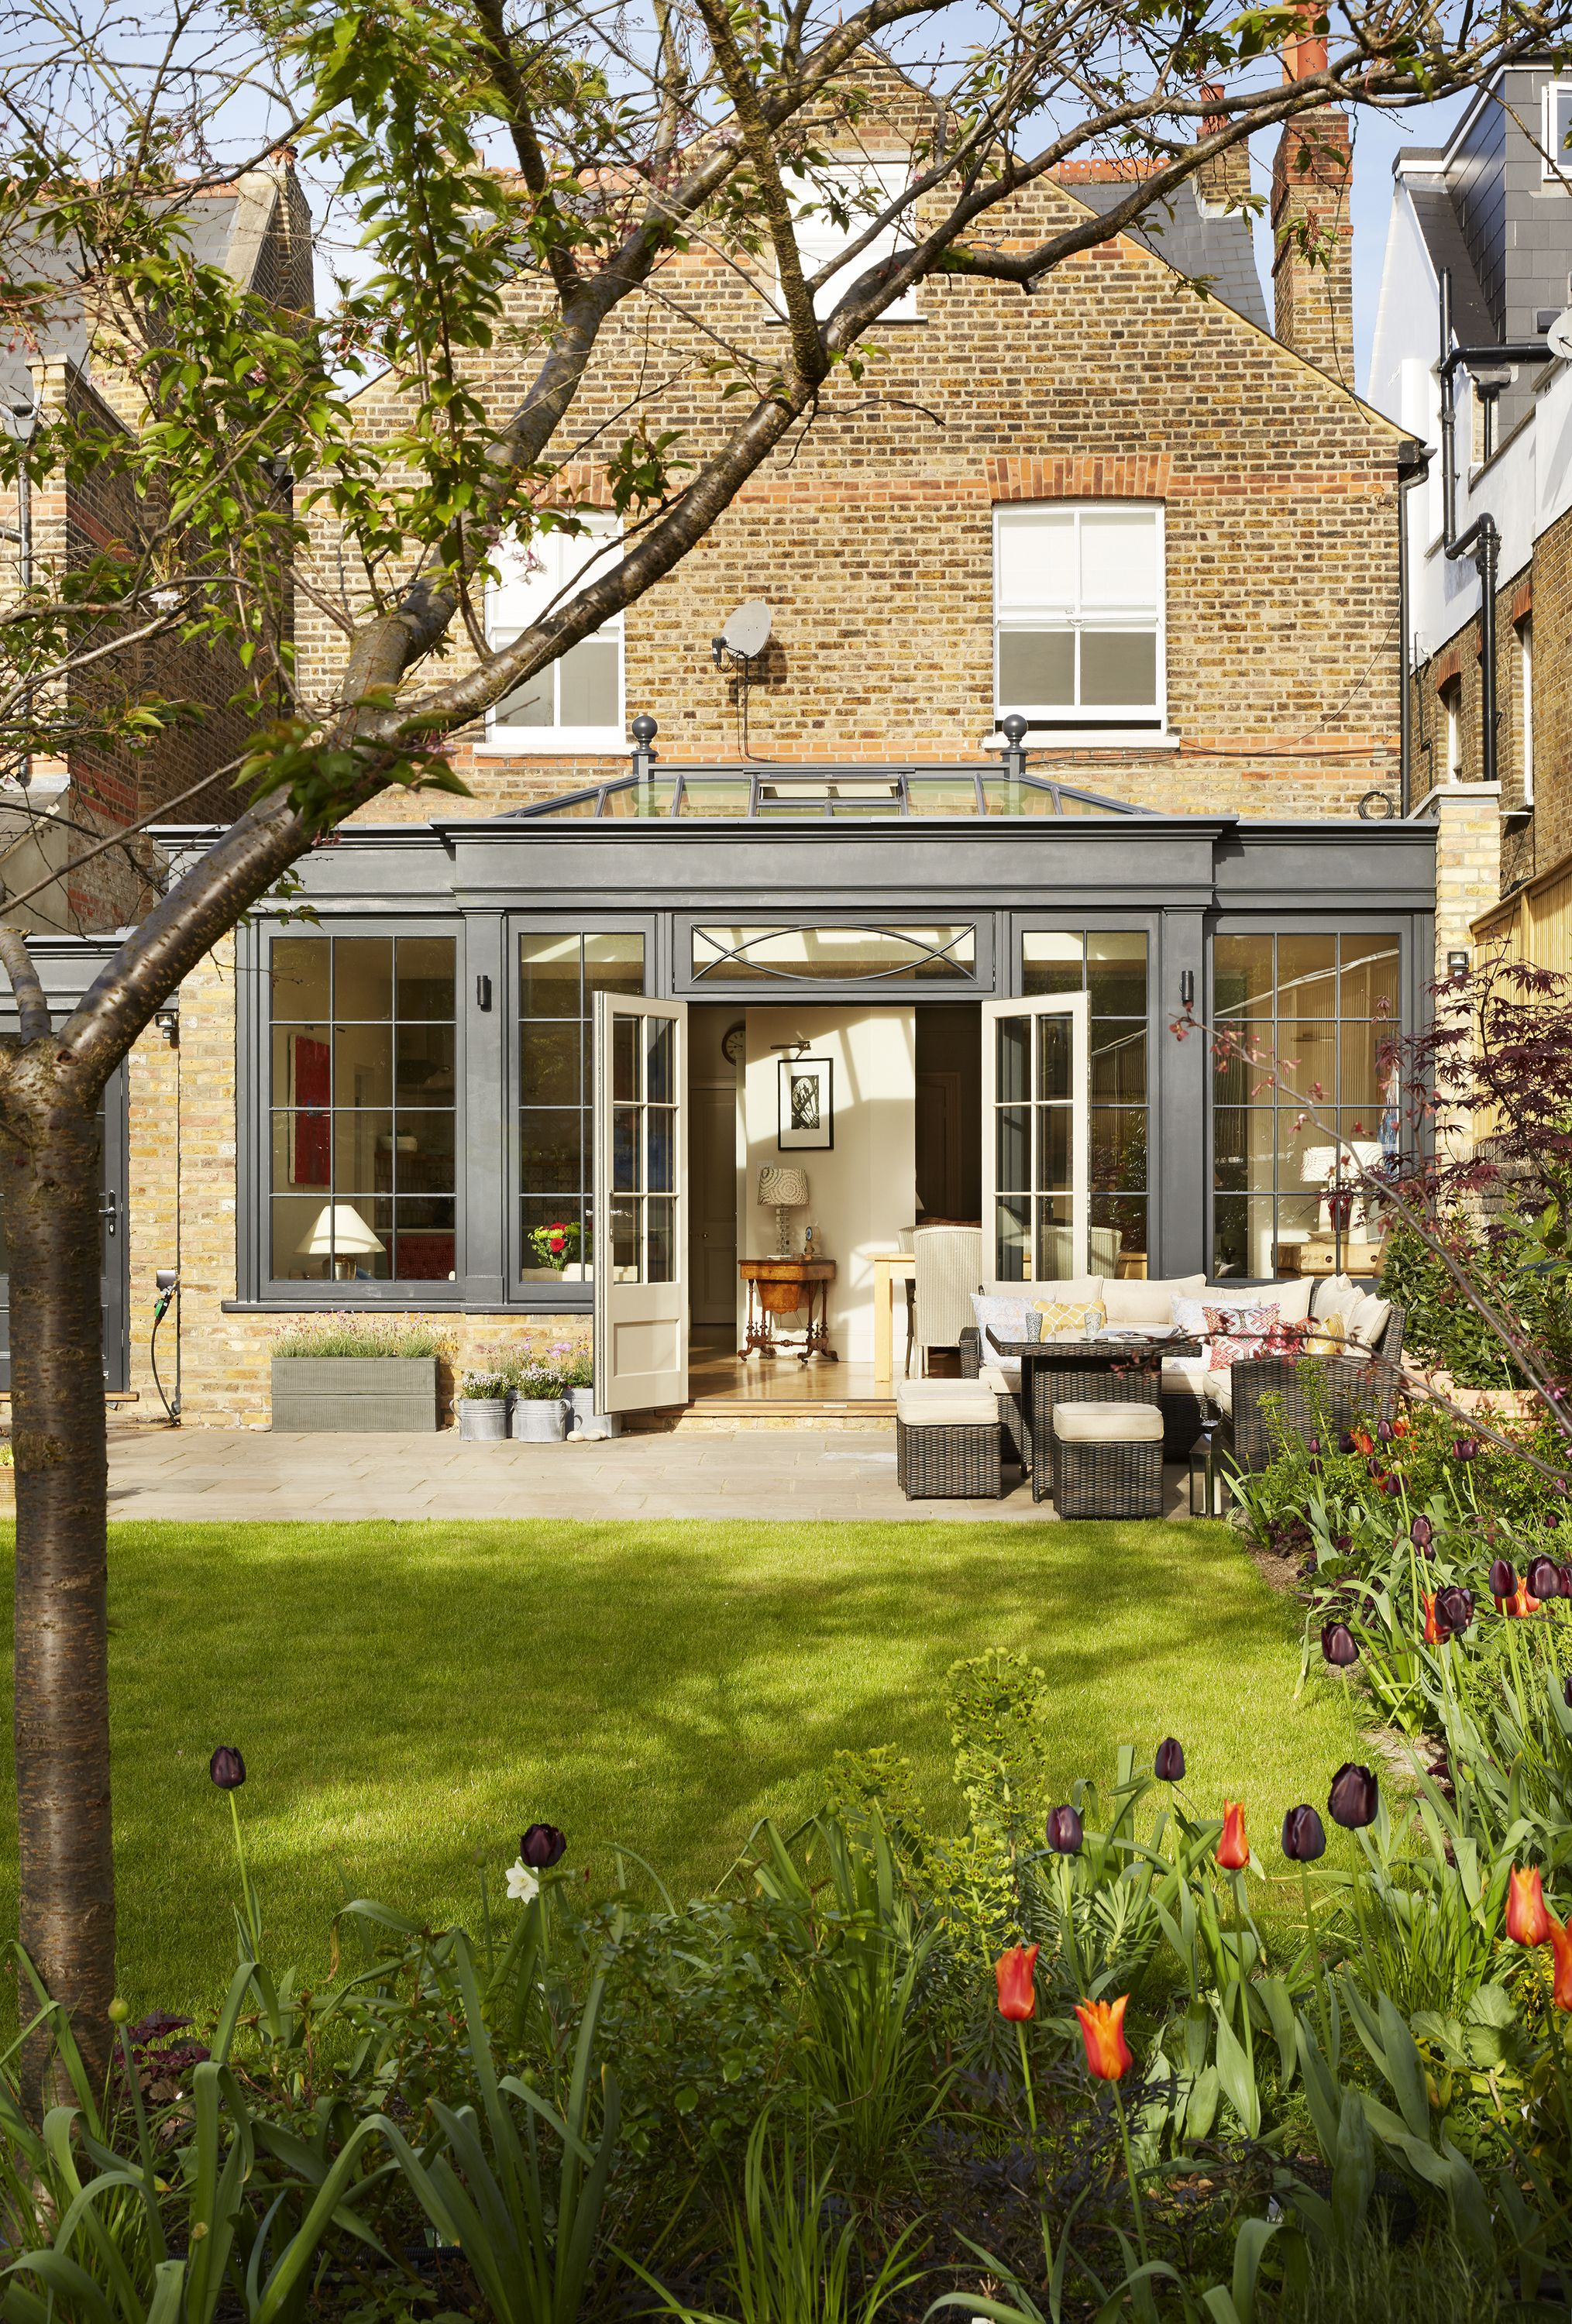 Find out how to add a conservatory